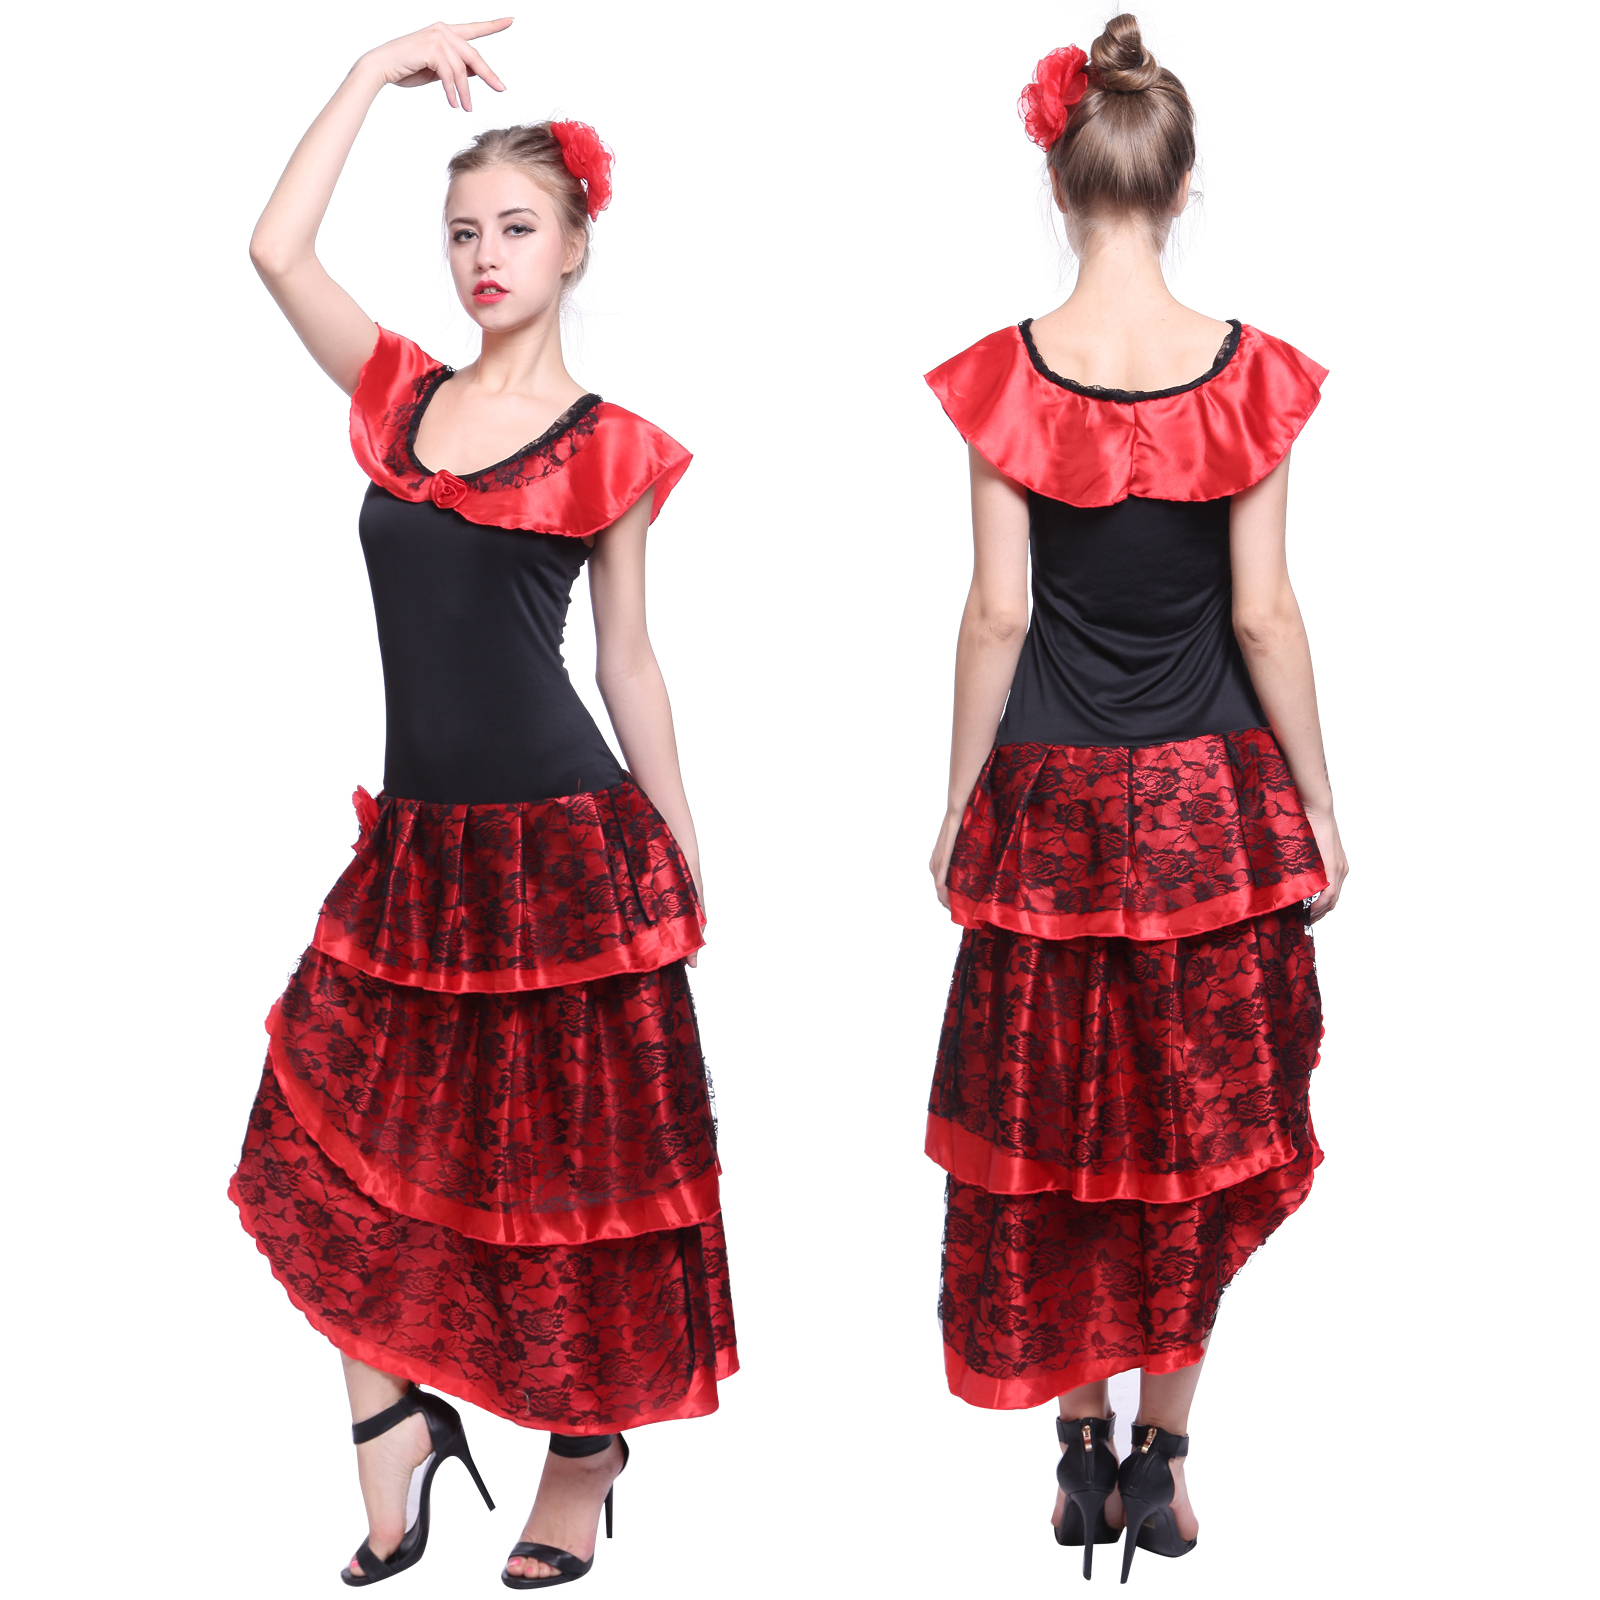 ladies spanish flamenco fancy dress senorita rumba salsa. Black Bedroom Furniture Sets. Home Design Ideas